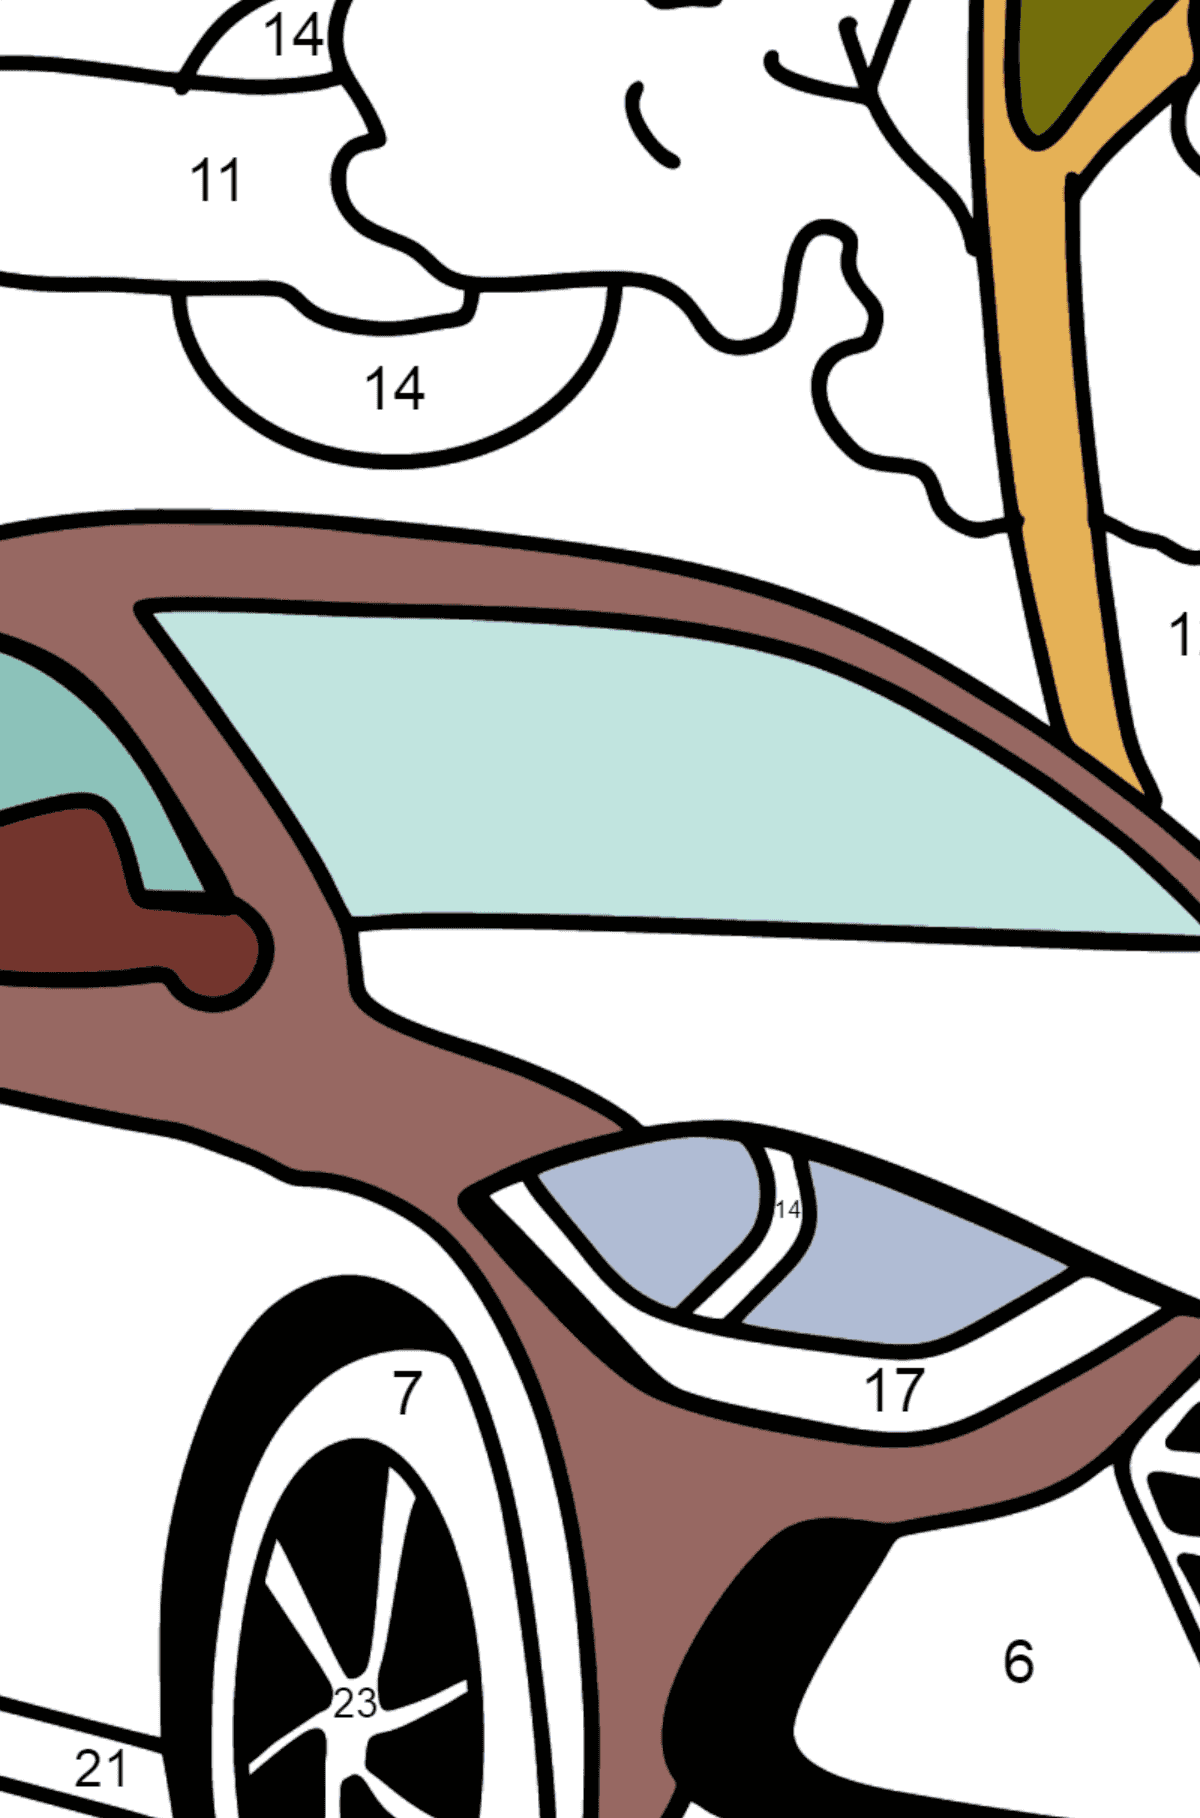 Hyundai car coloring page - Coloring by Numbers for Kids